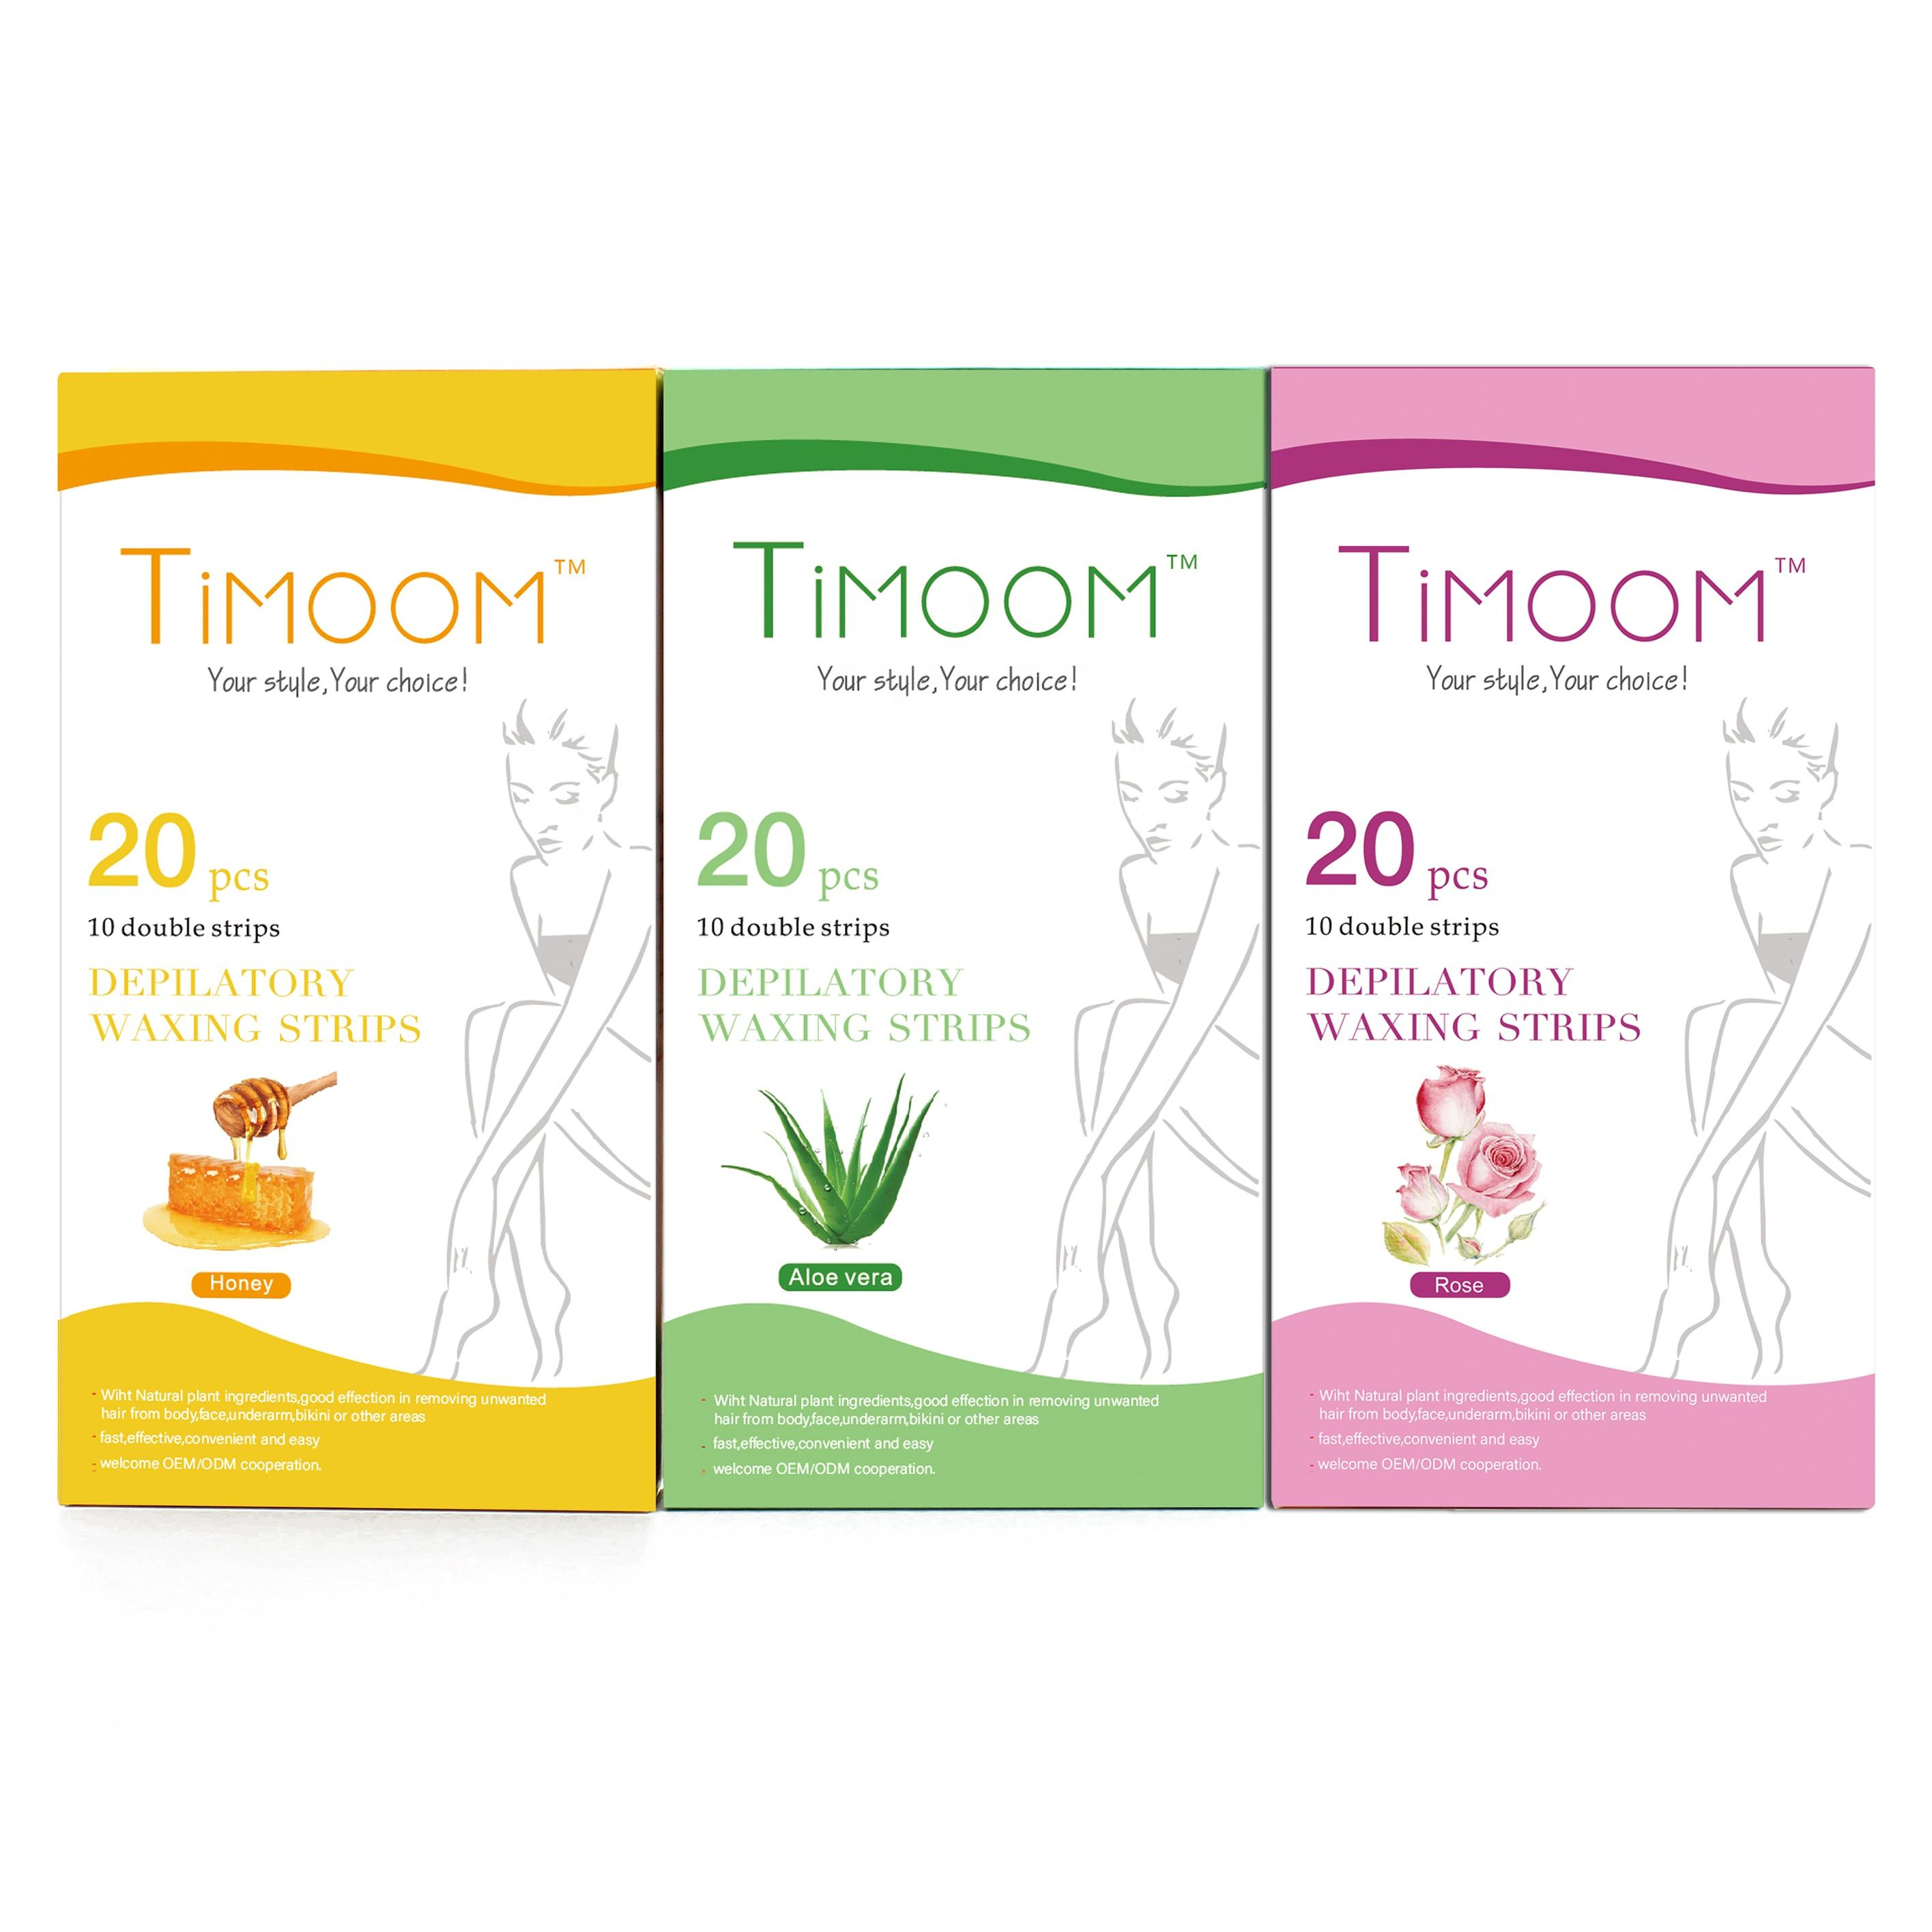 Free Sample Hot sale Factory TIMOOM 20 pcs Hair Removal Depilatory portable Waxing Strips Disposable waxing strips body use